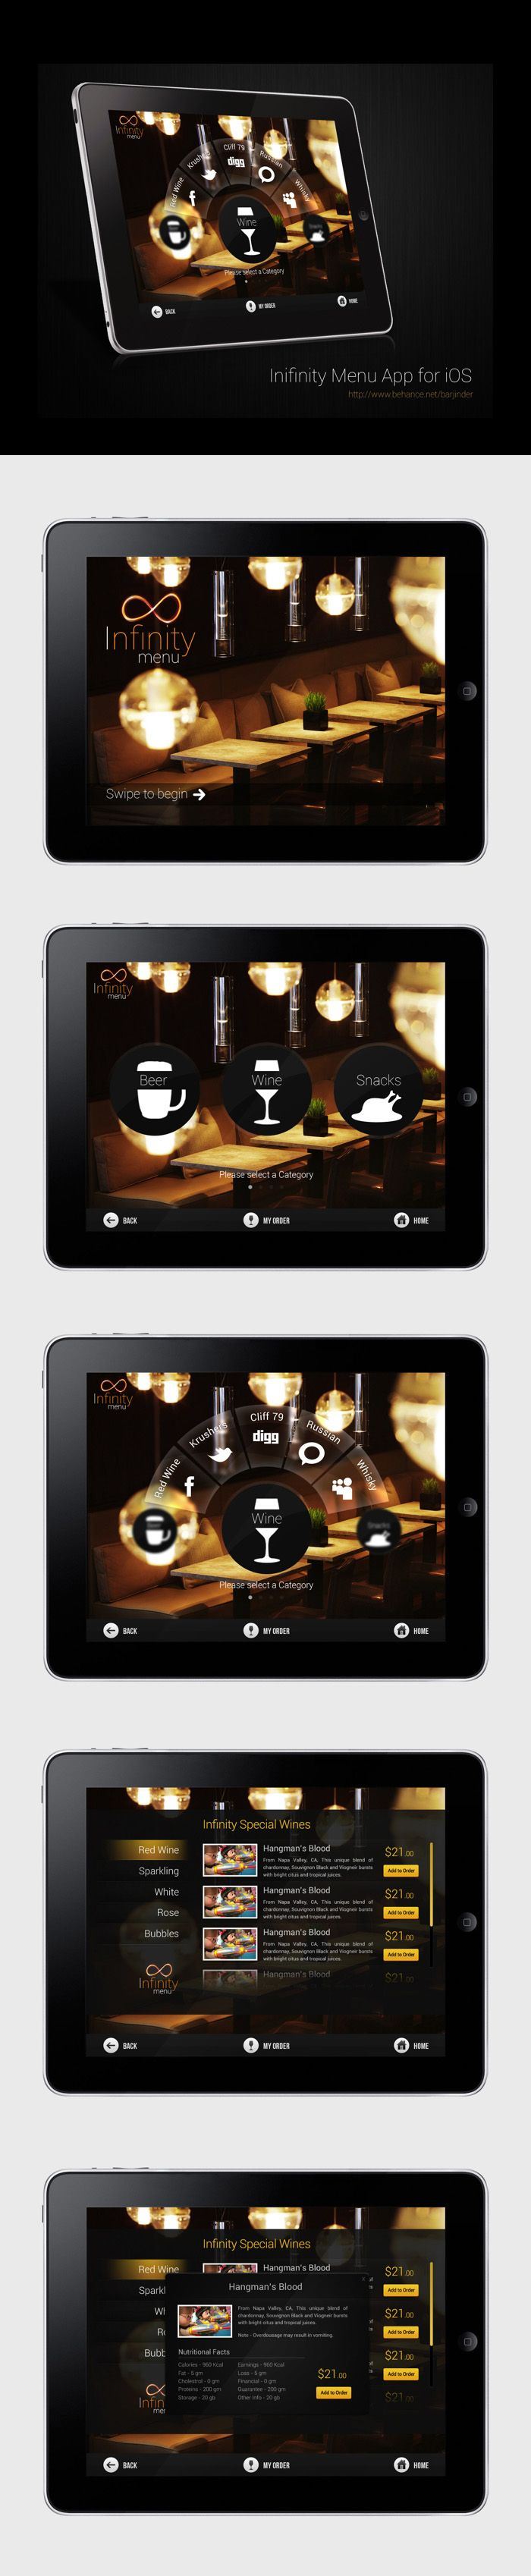 Infinity Menu App for iPad by Barjinder Singh, via Behance  ***  Here is the UI that I designed some time back for a client. It is basically a restaurant menu app for iPad named Infinity Menu. I have tried to make it look modern but at the same time, it should feel royal and premium. Using circular menus for the first time. Hope you guys will like it.